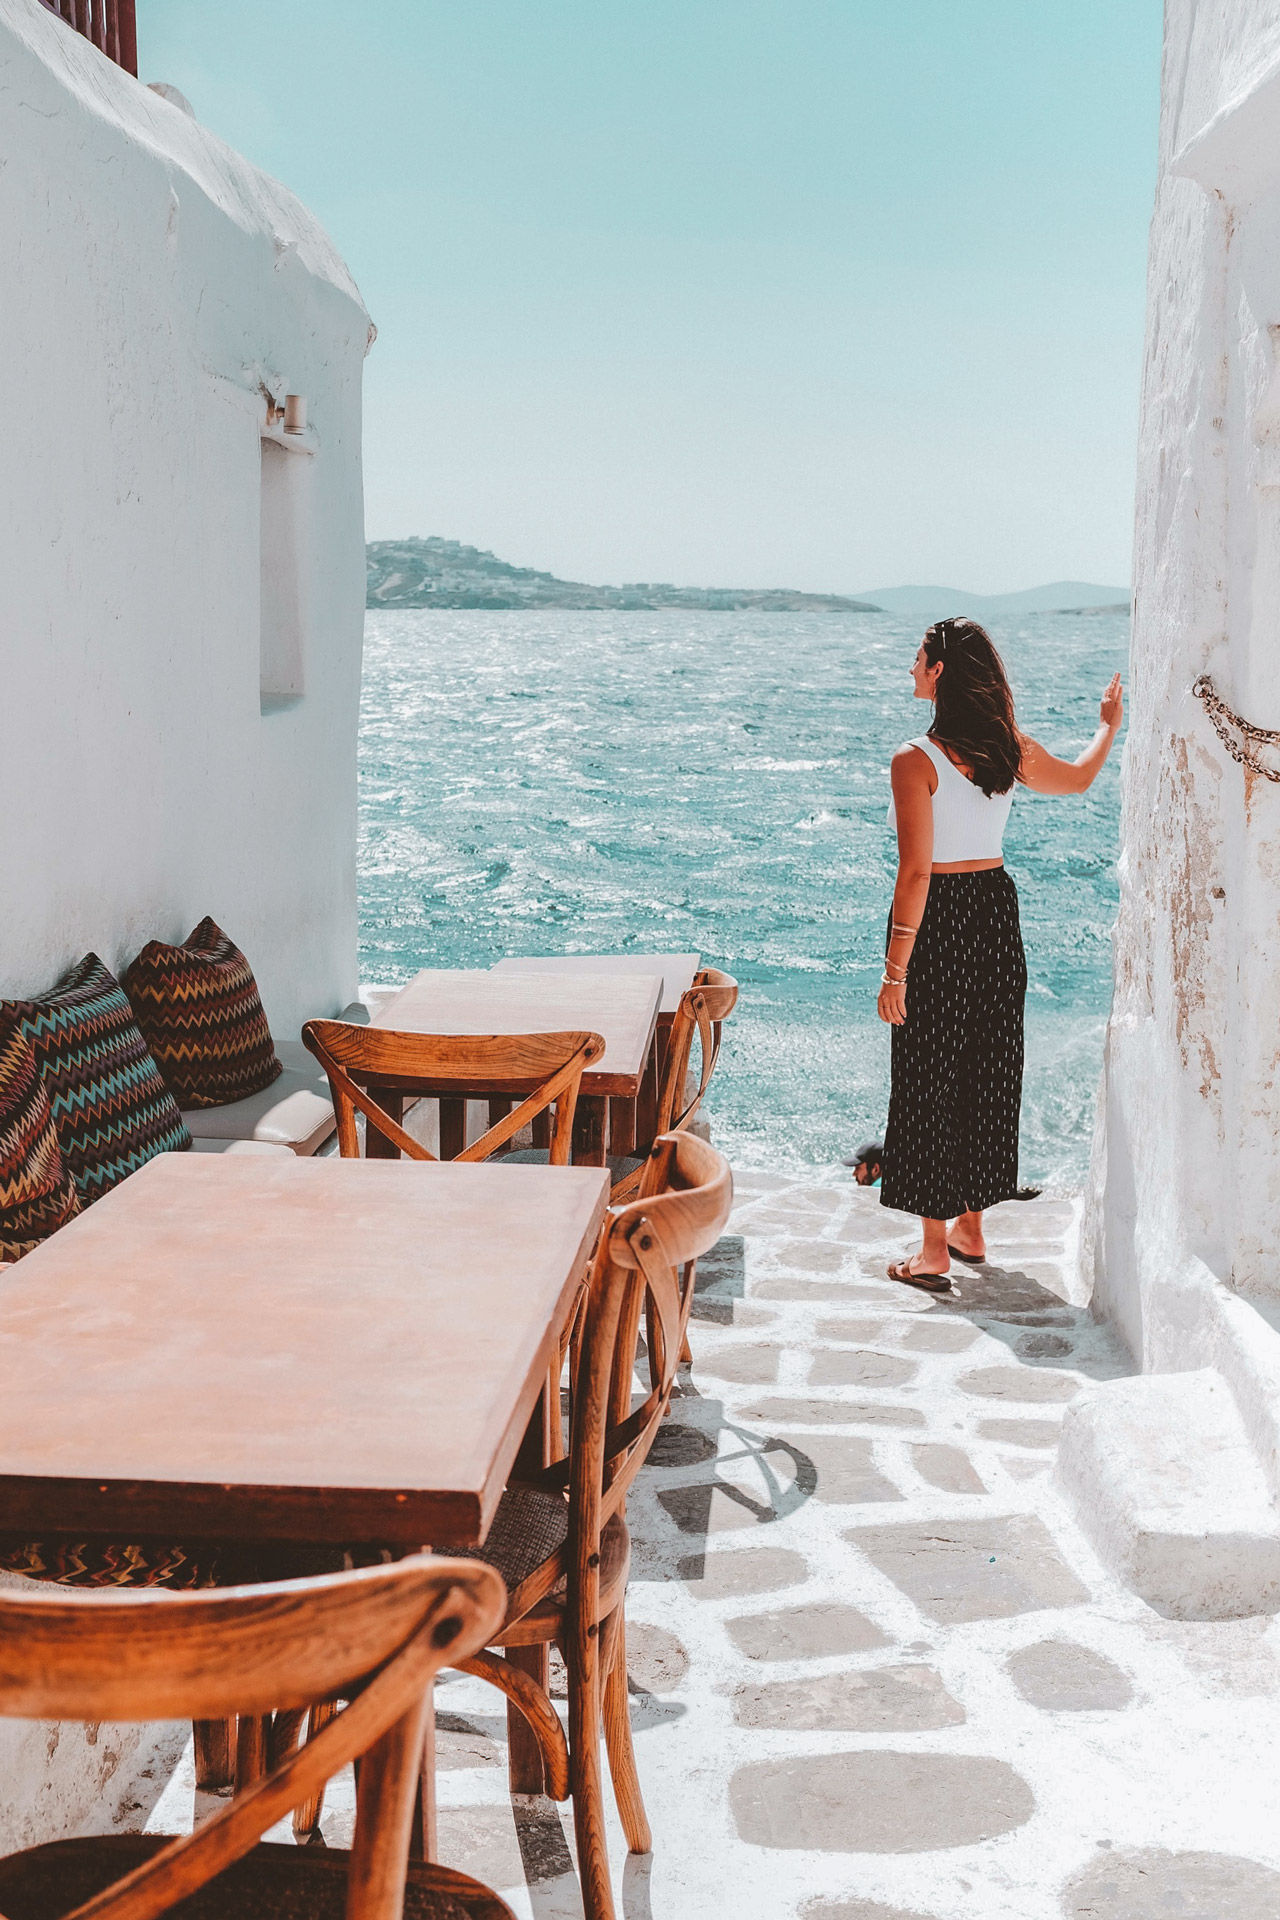 The main town of Mykonos can be enjoyed all year round